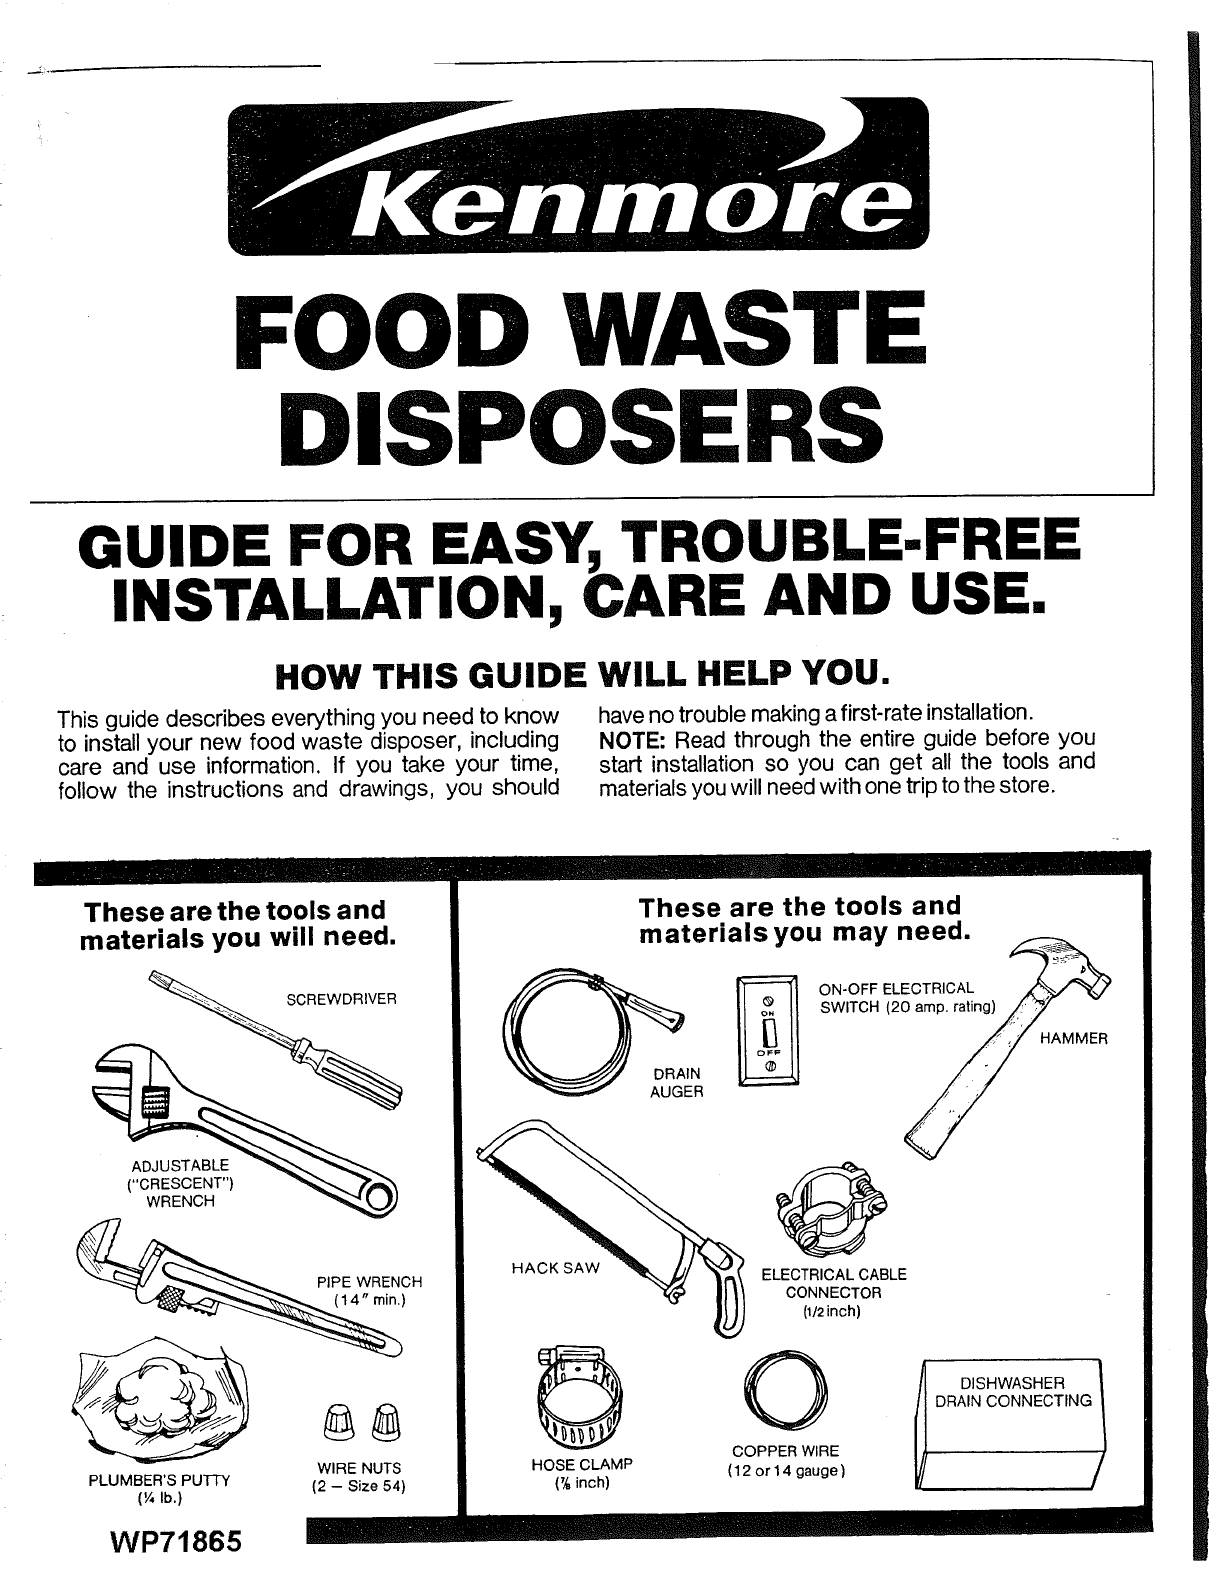 Kenmore 17560450 User Manual Disposer Manuals And Guides